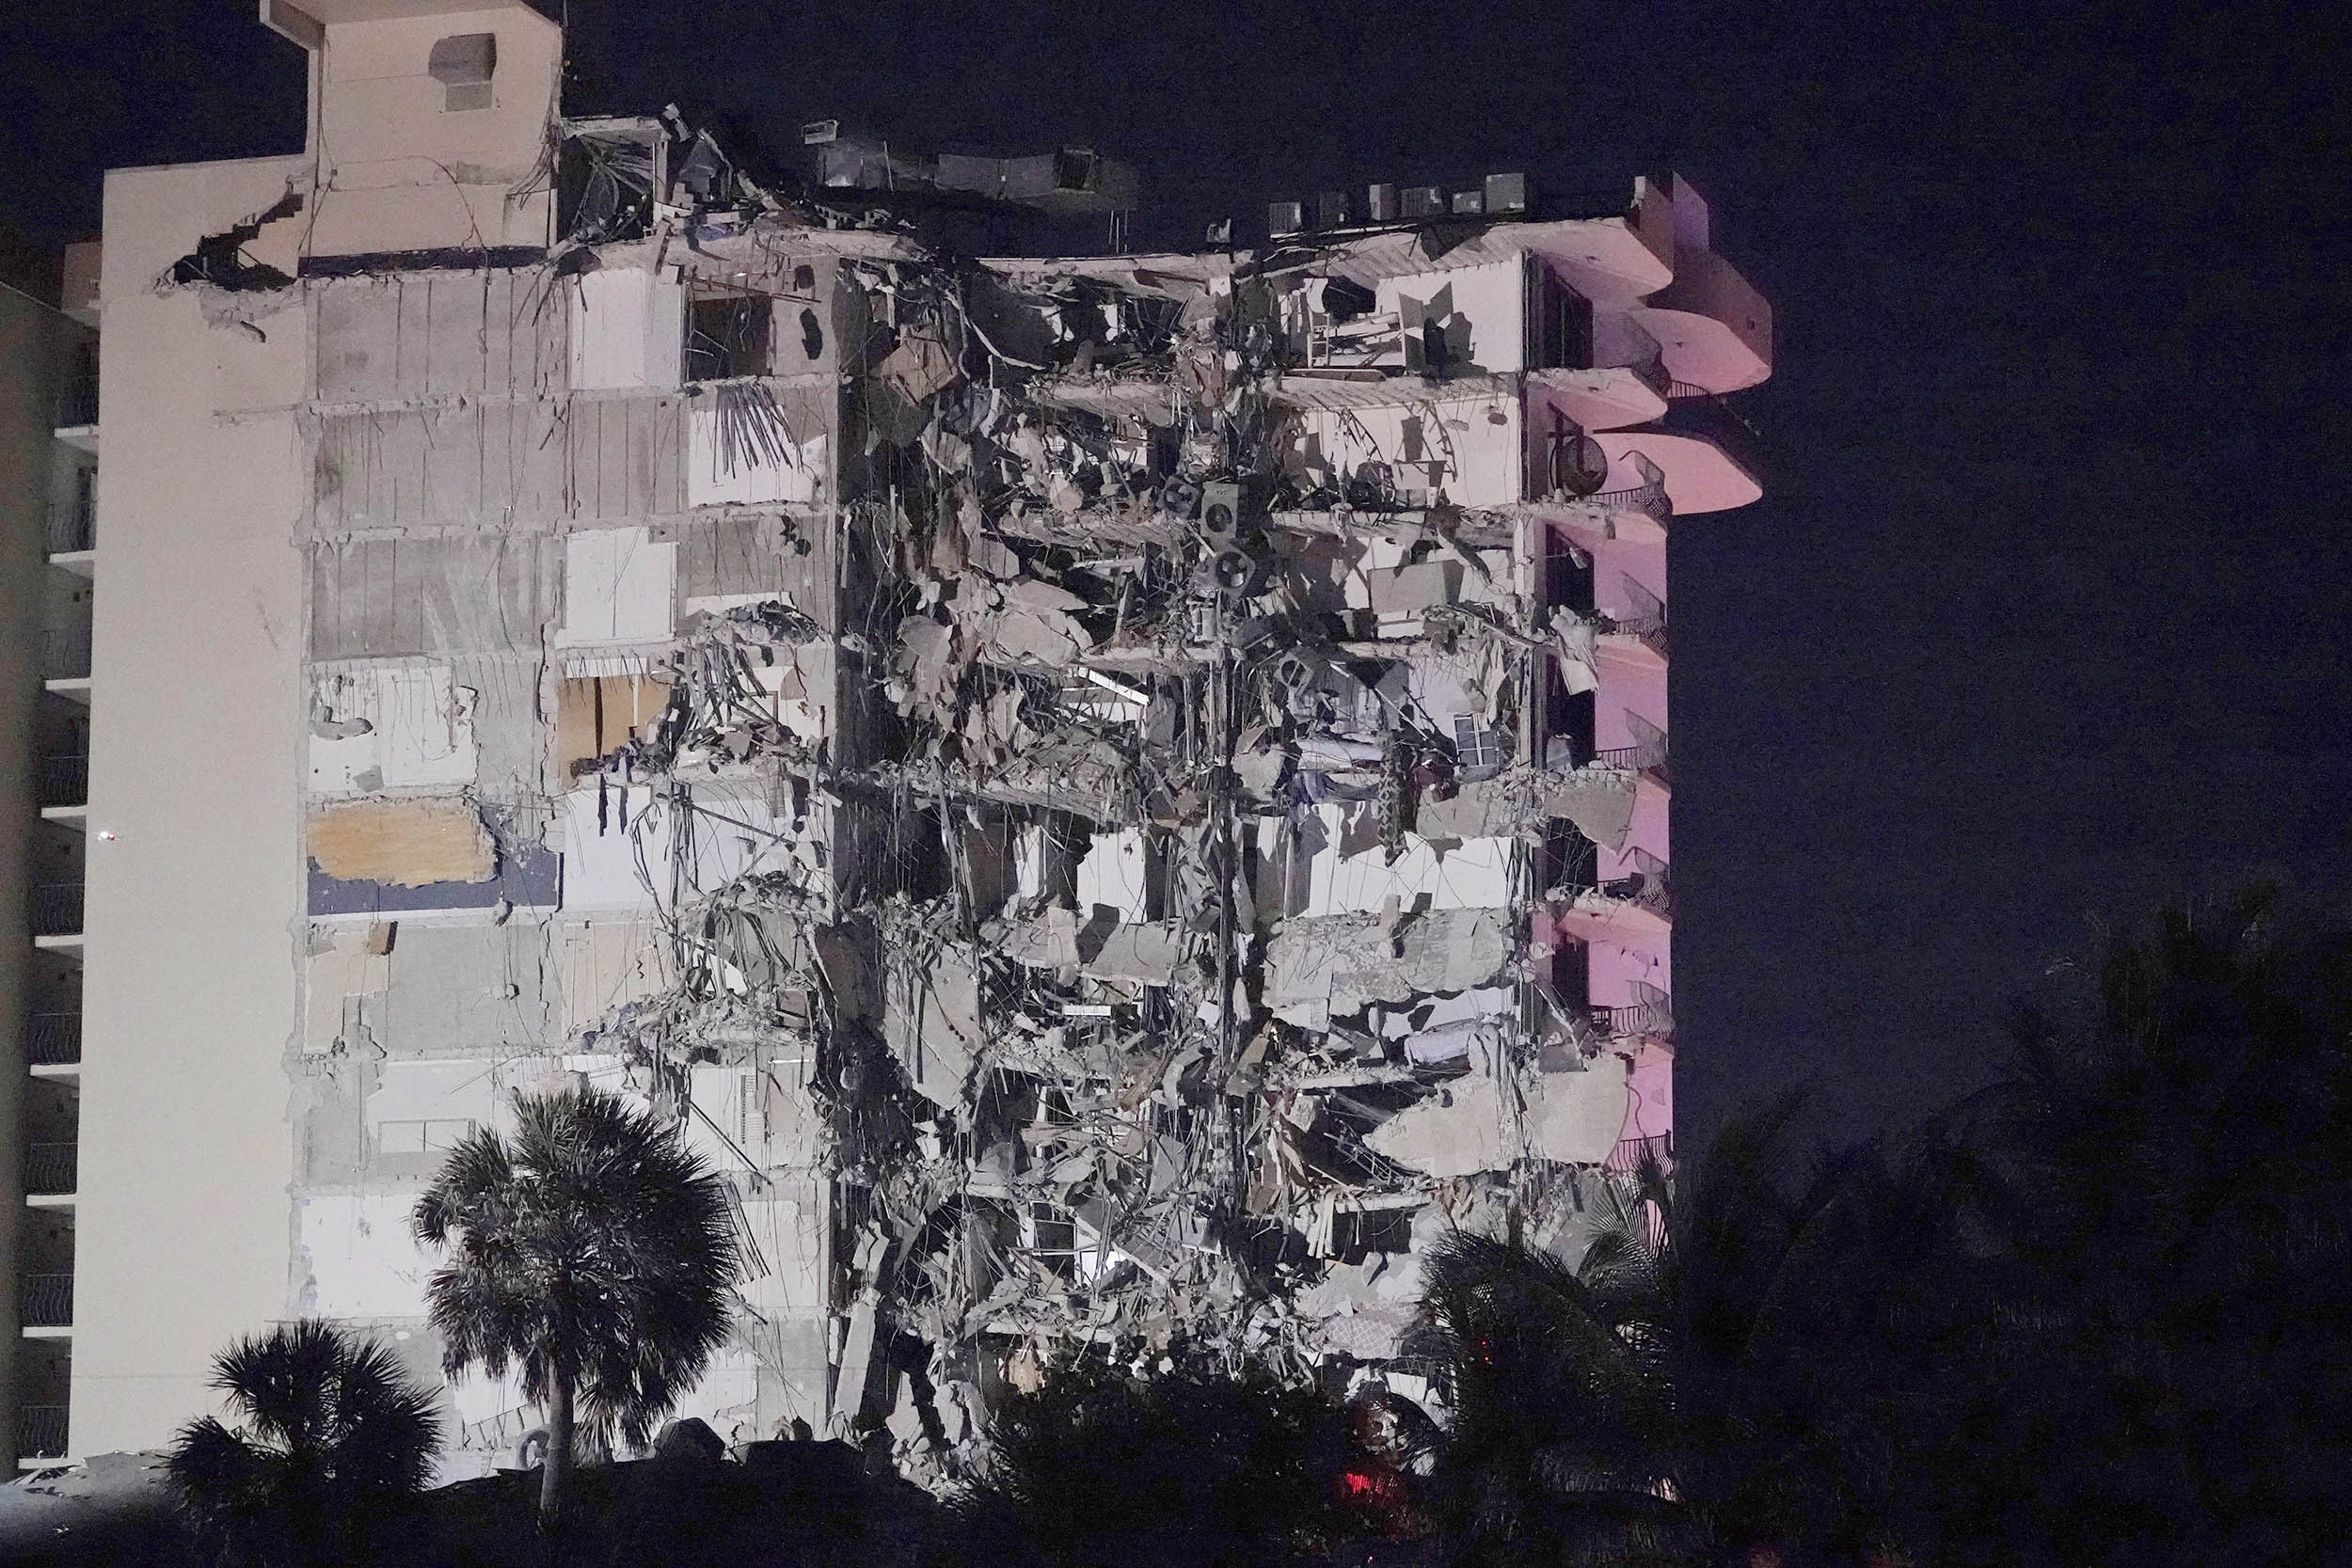 At least 1 dead after high-rise condo building partially collapses near  Miami Beach